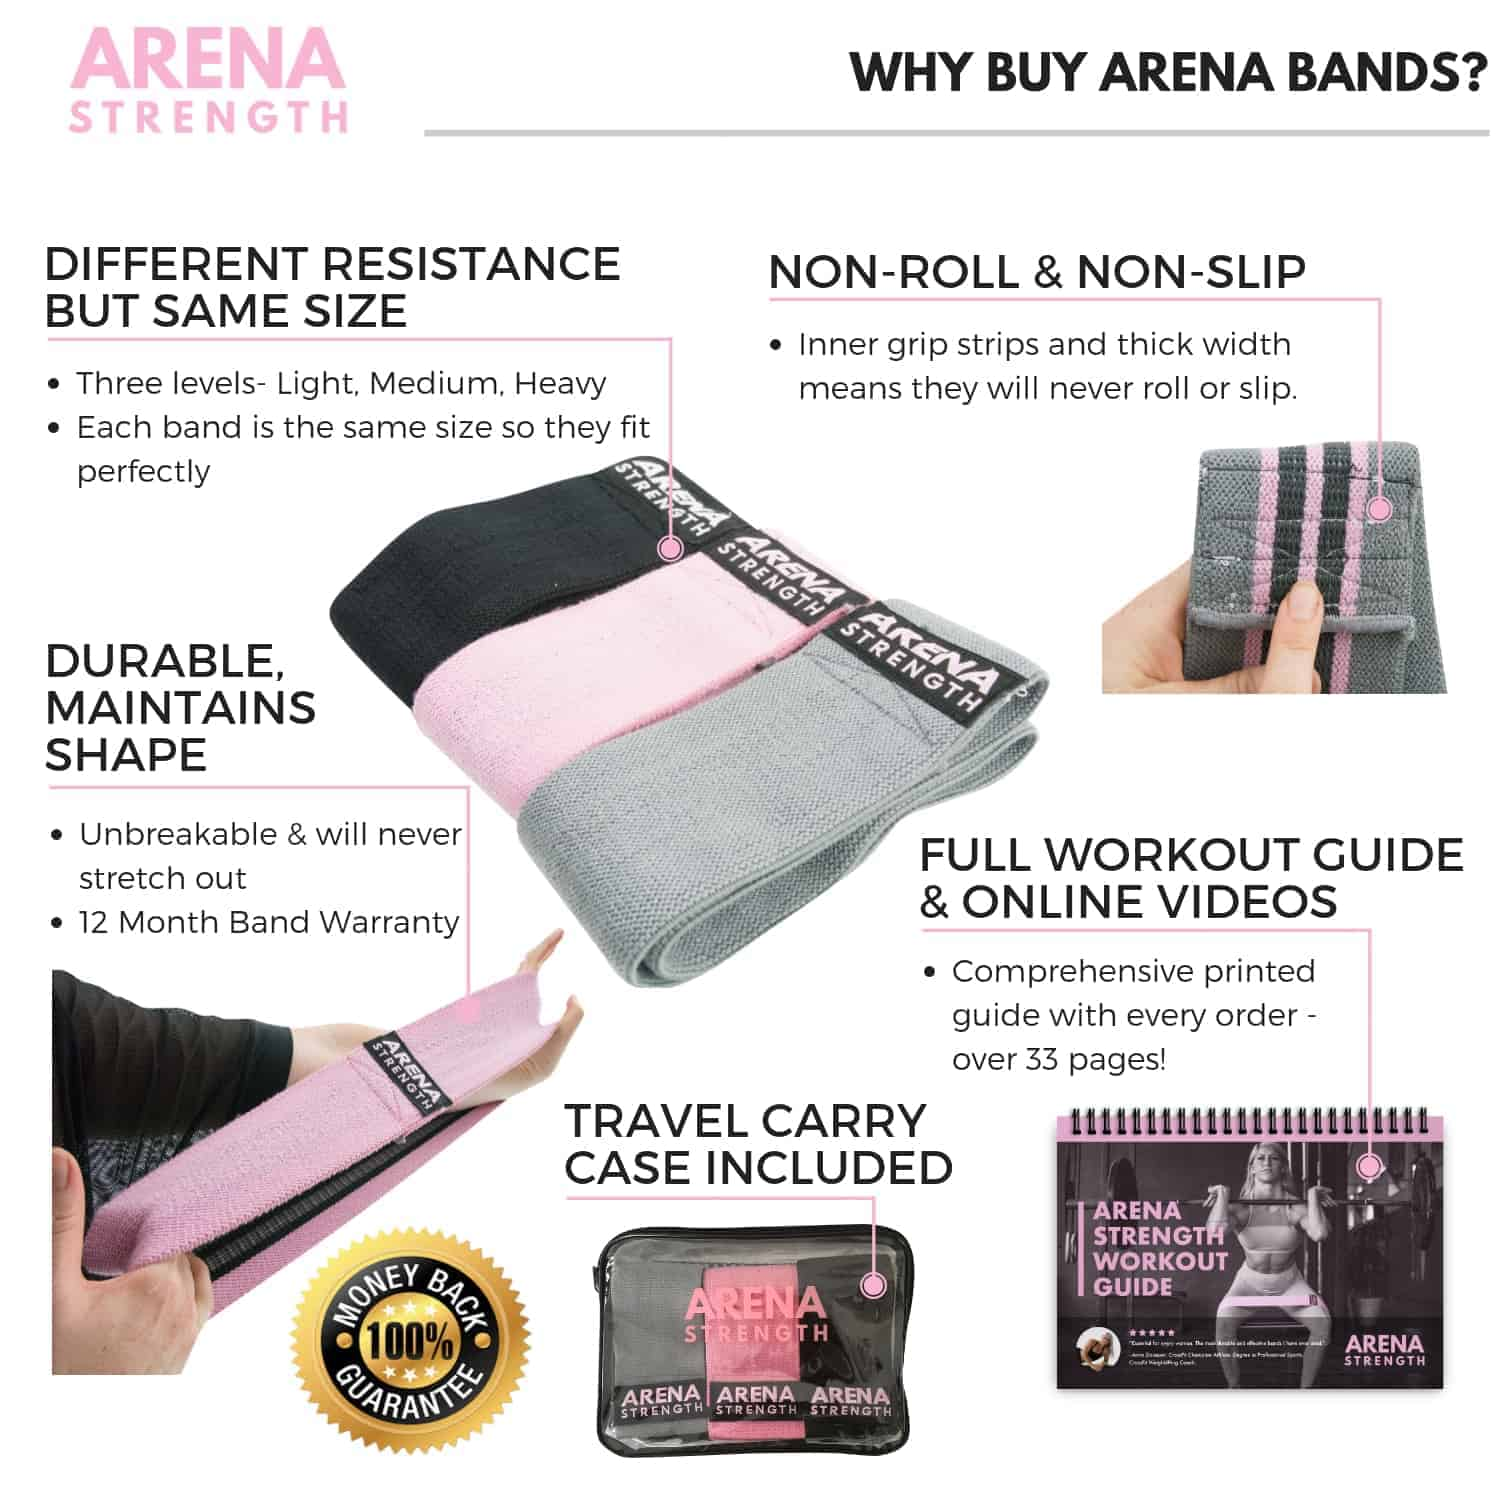 Moderne Fabric Booty Resistance Bands that will NEVER Break or Roll BN-54